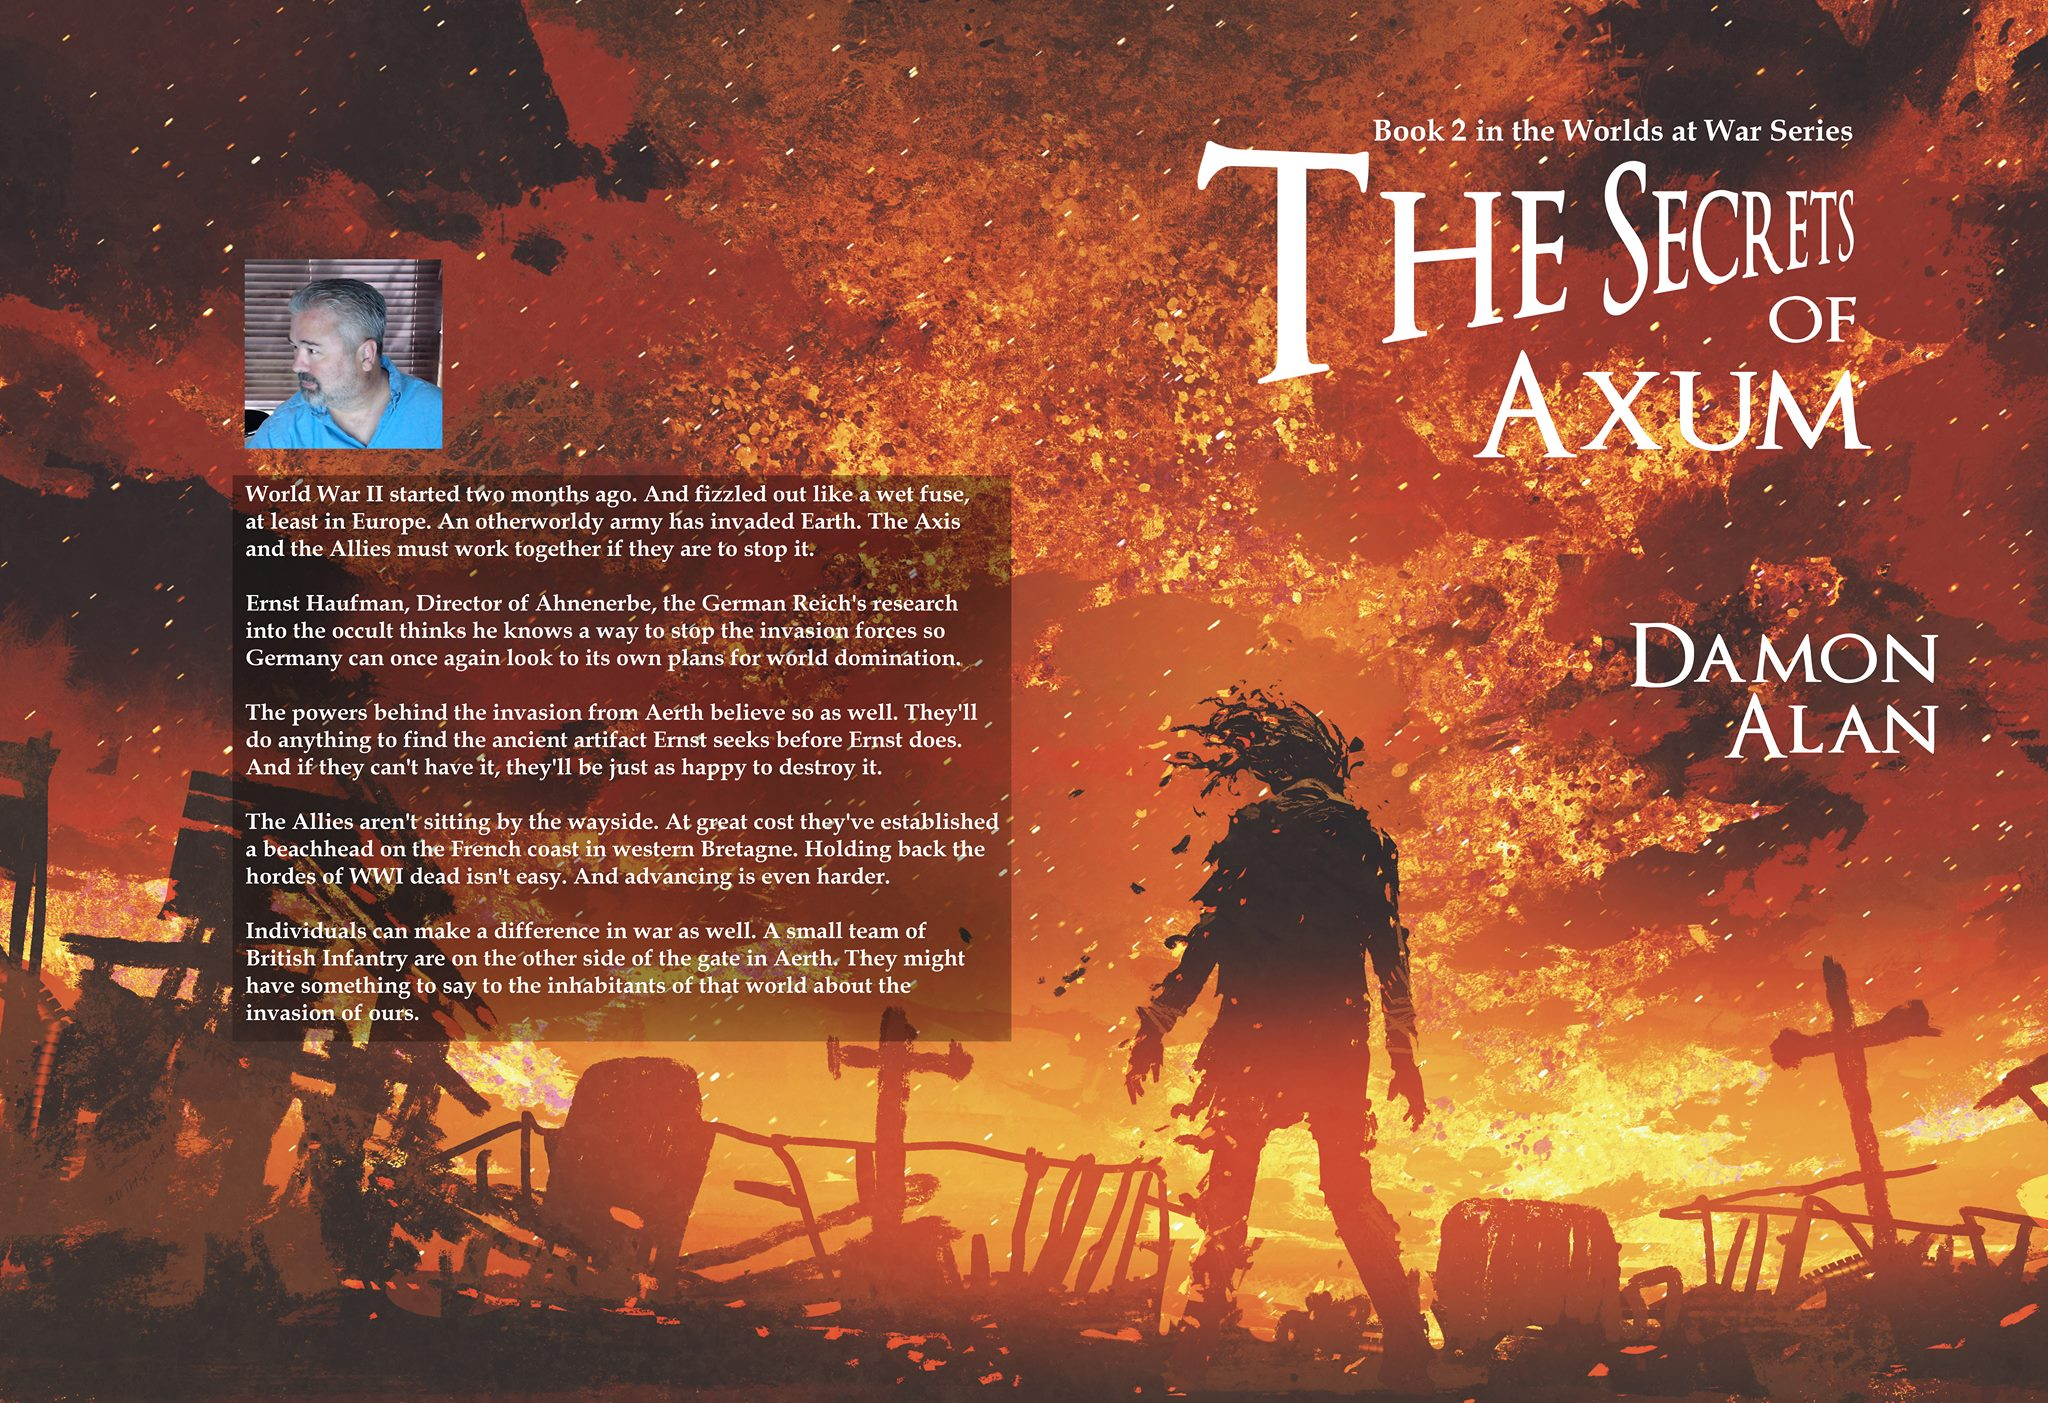 Sooooo, I was busy? Dark Seas Damon Alan's Author Page